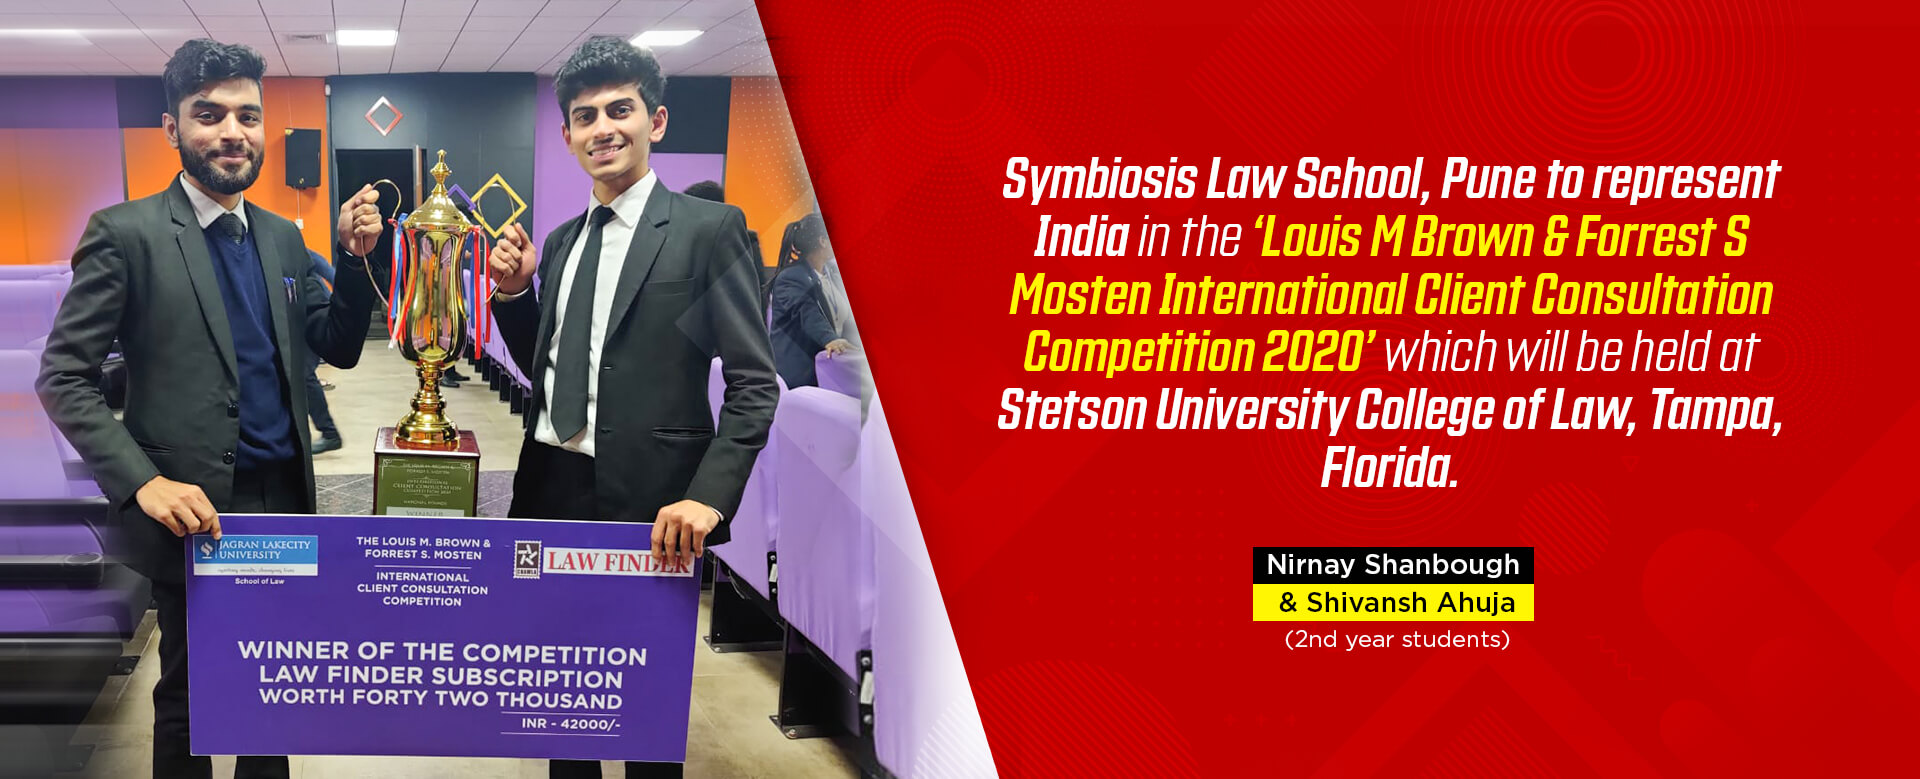 Law finder competition winner